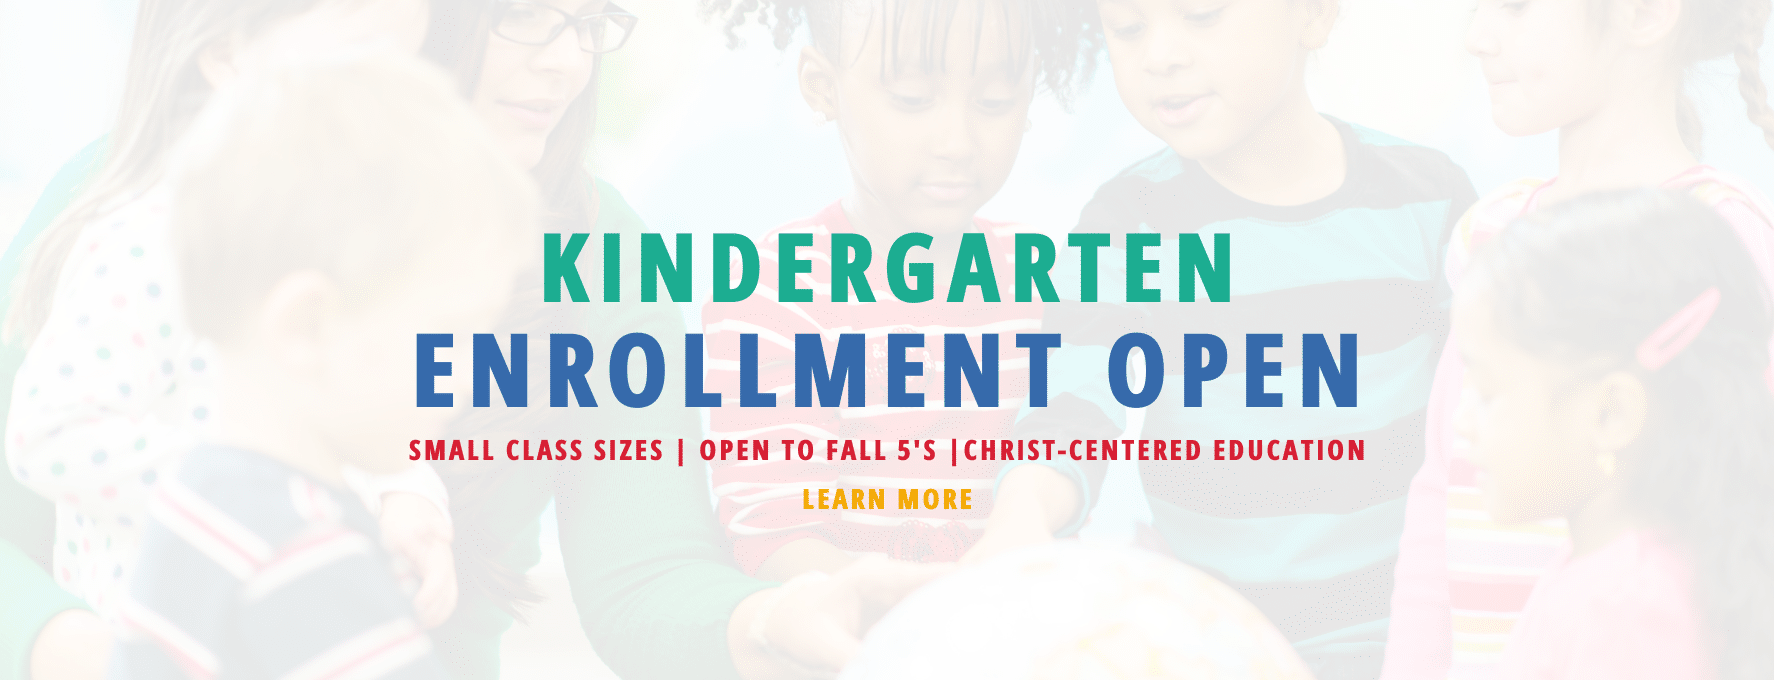 Kindergarten Enrollment Open. Small class sizes. Open to Fall 5's. Christ-centered education. Click to learn more.